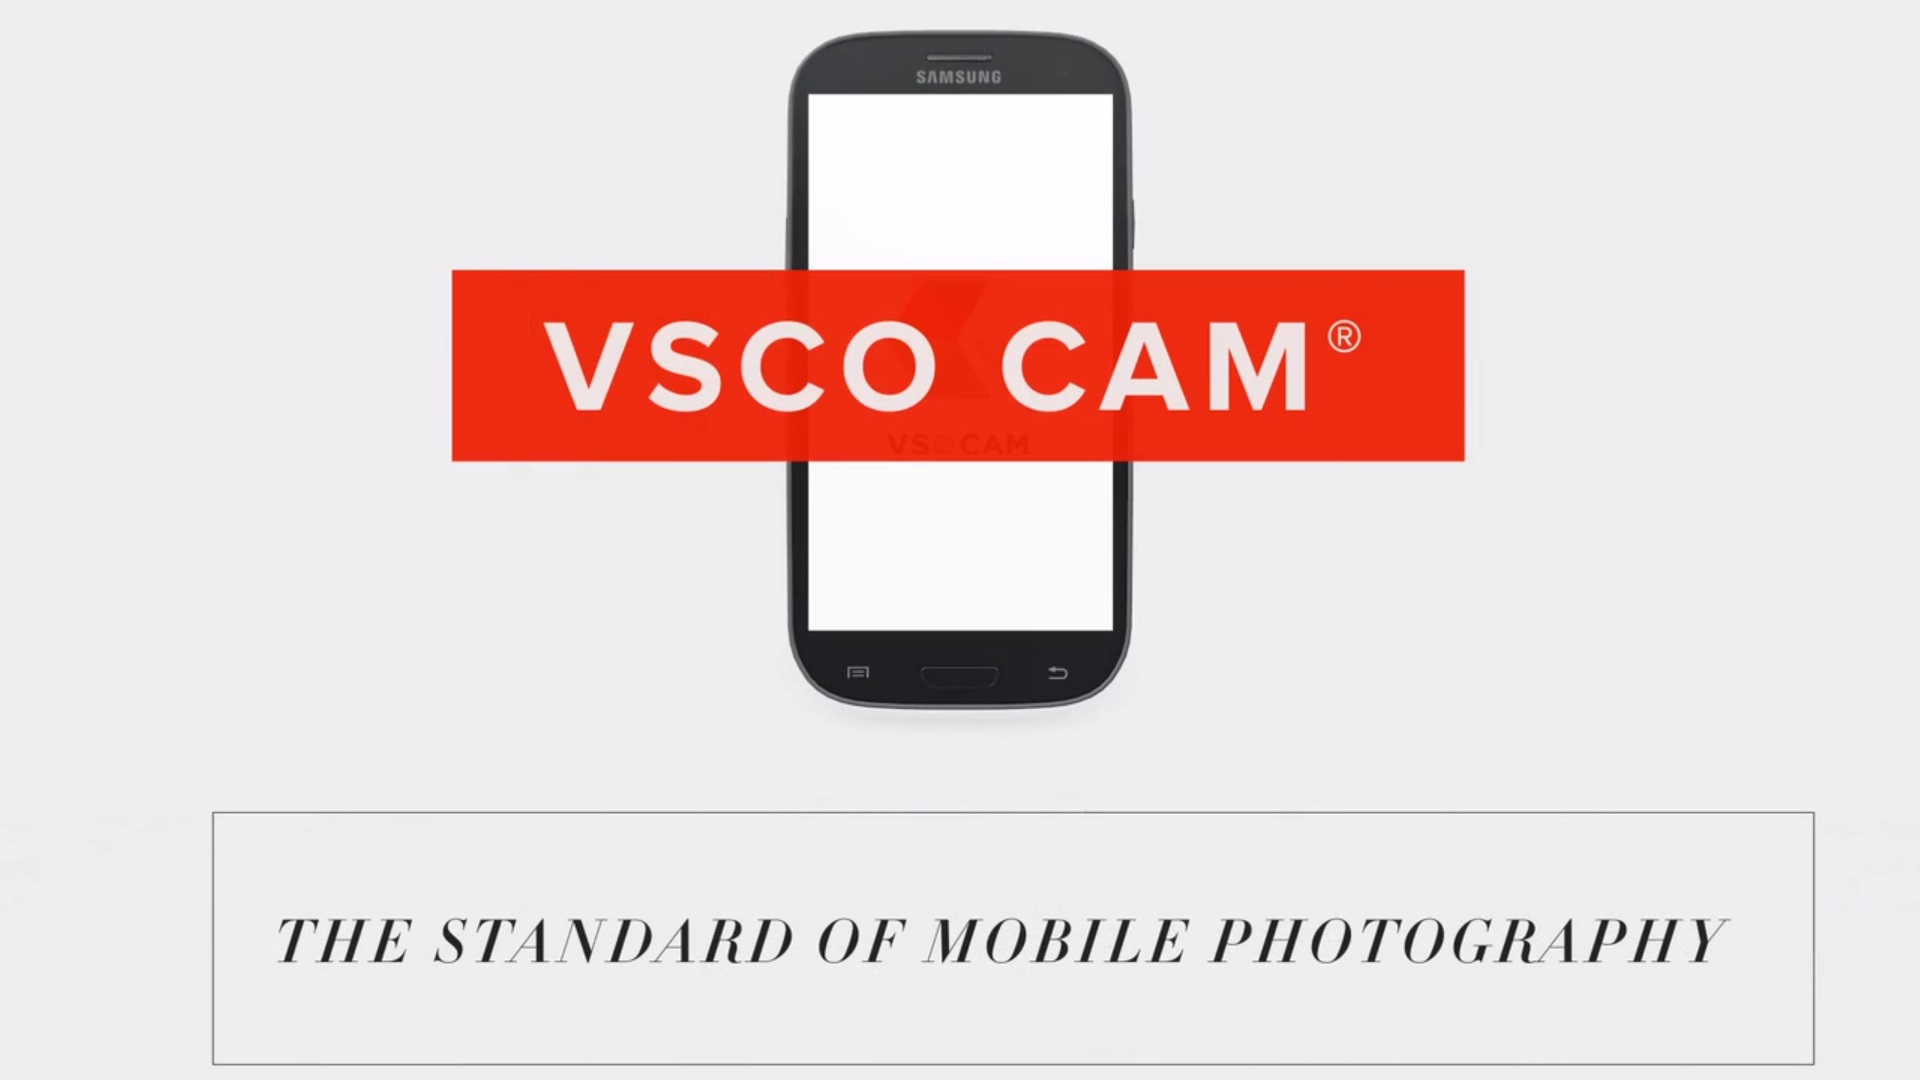 Popular iOS camera app VSCO Cam arrives on Android today